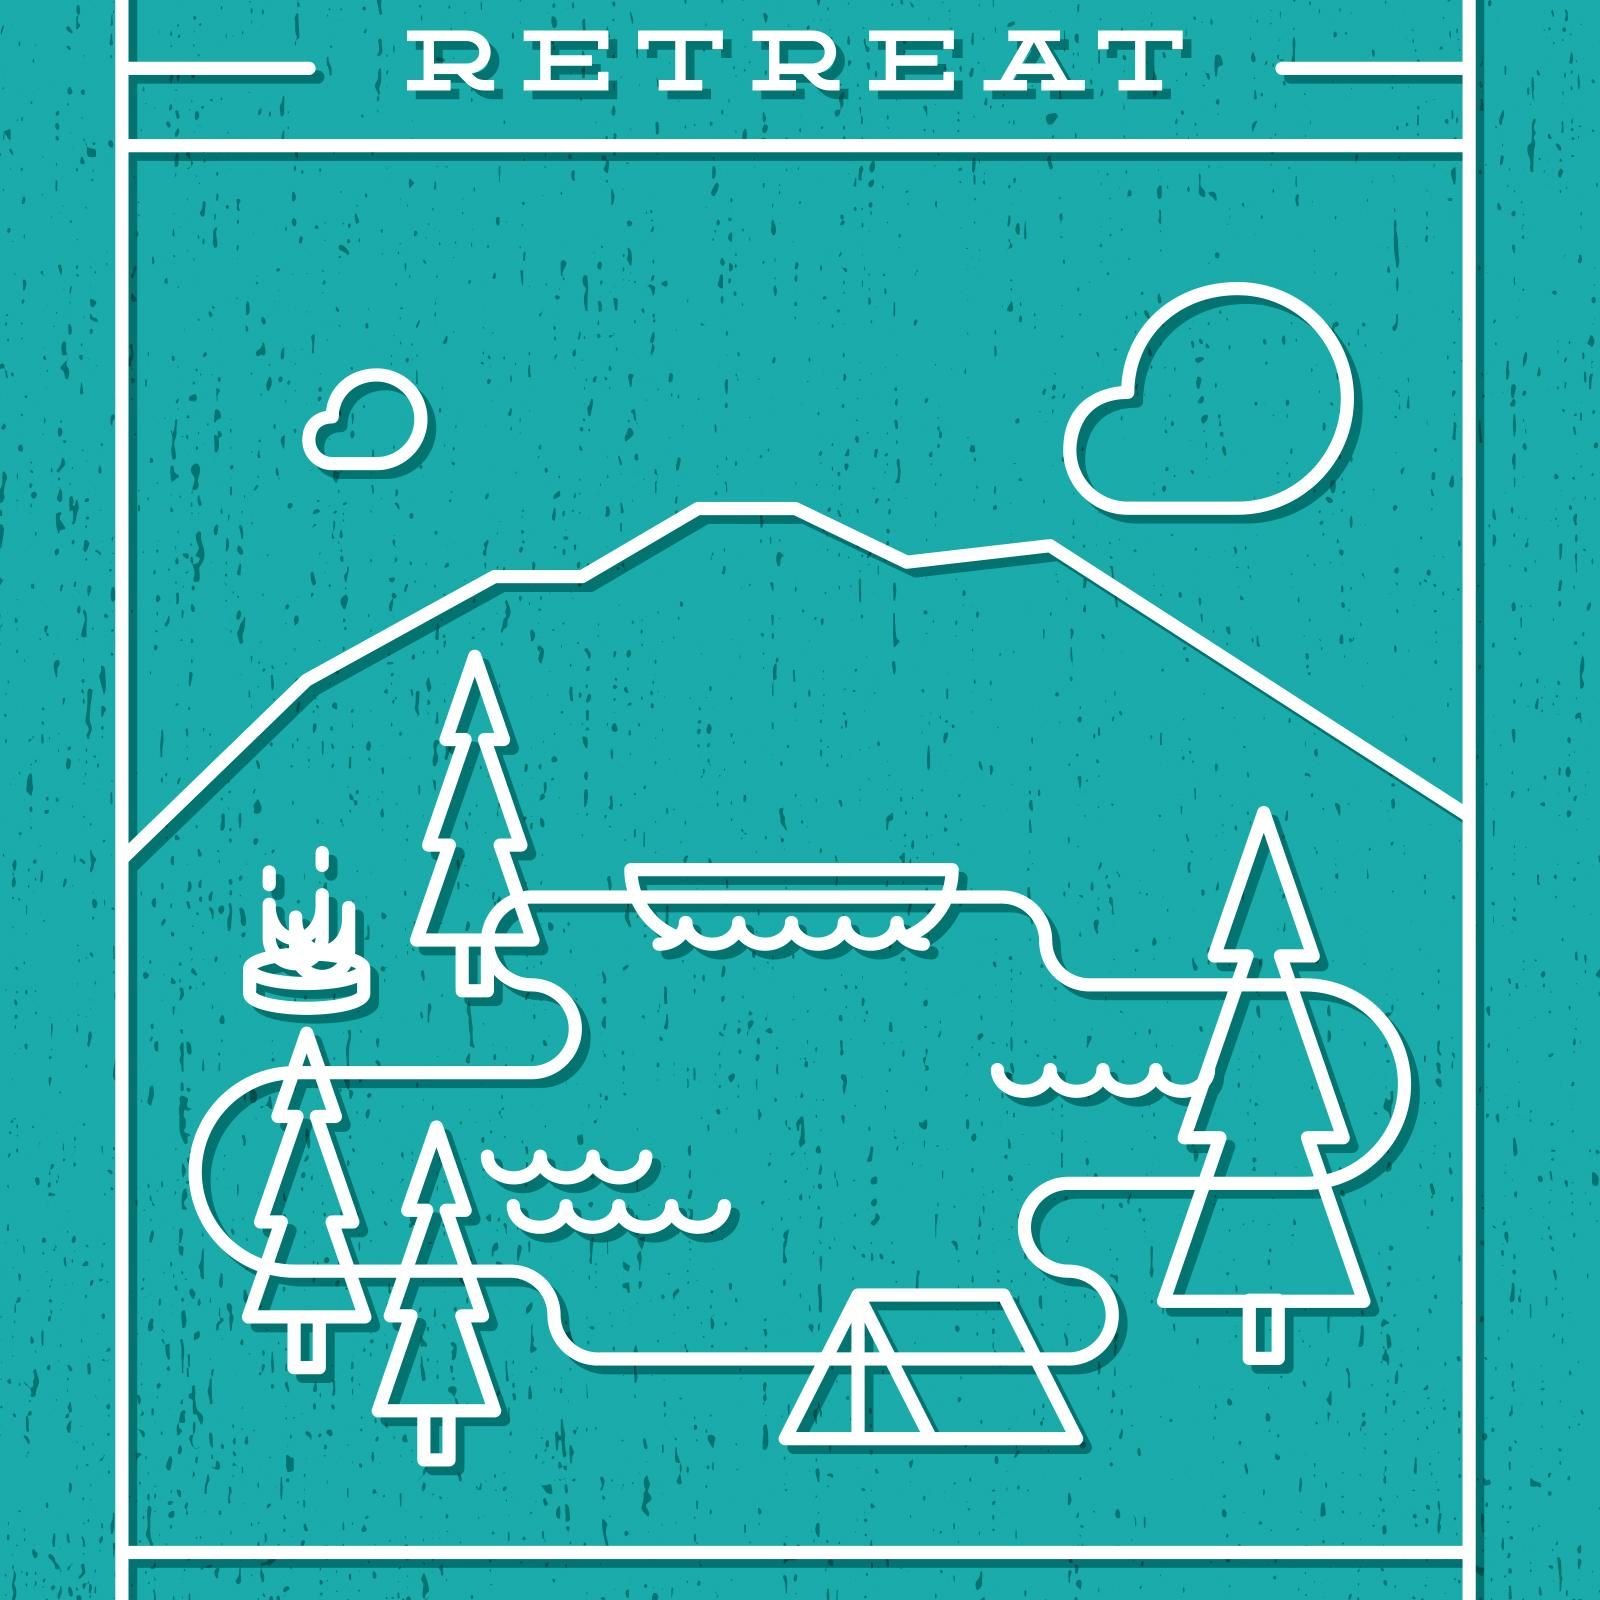 Retreat Illustration